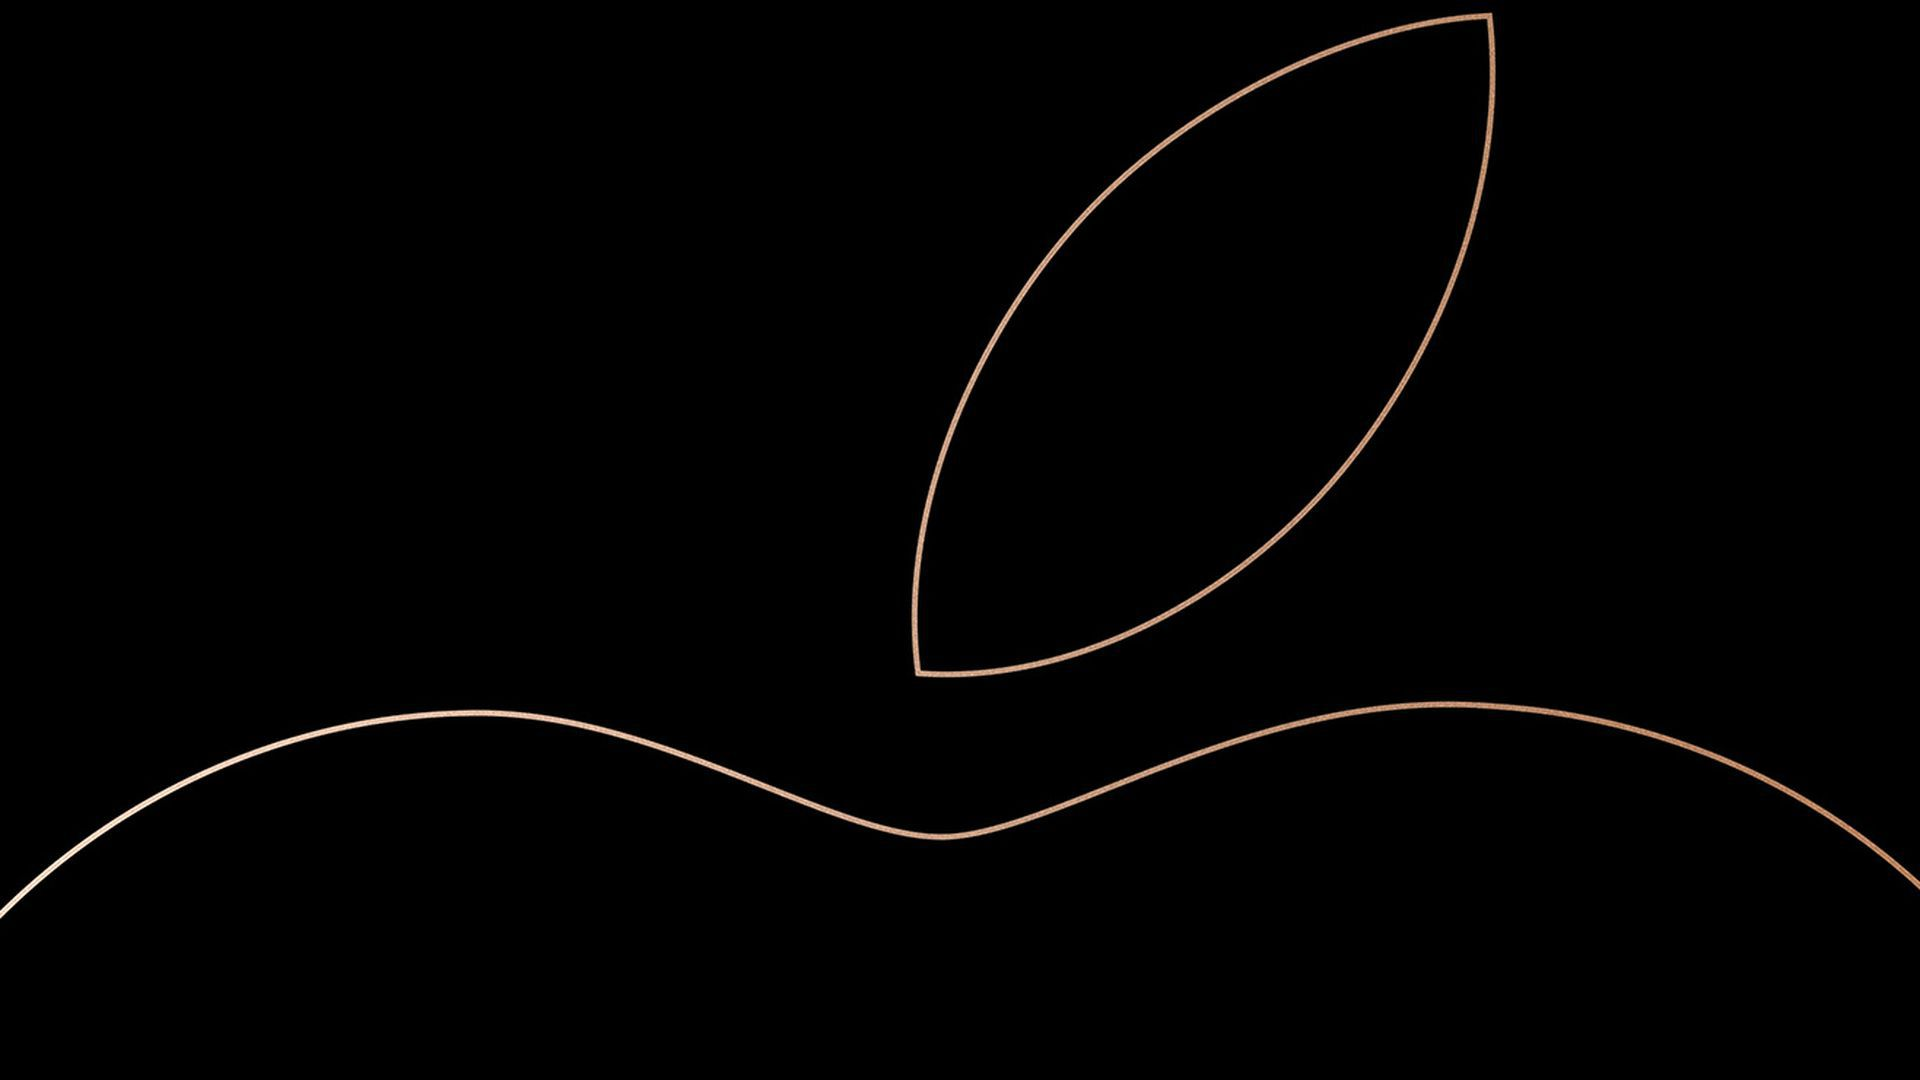 Invitation for Apple event